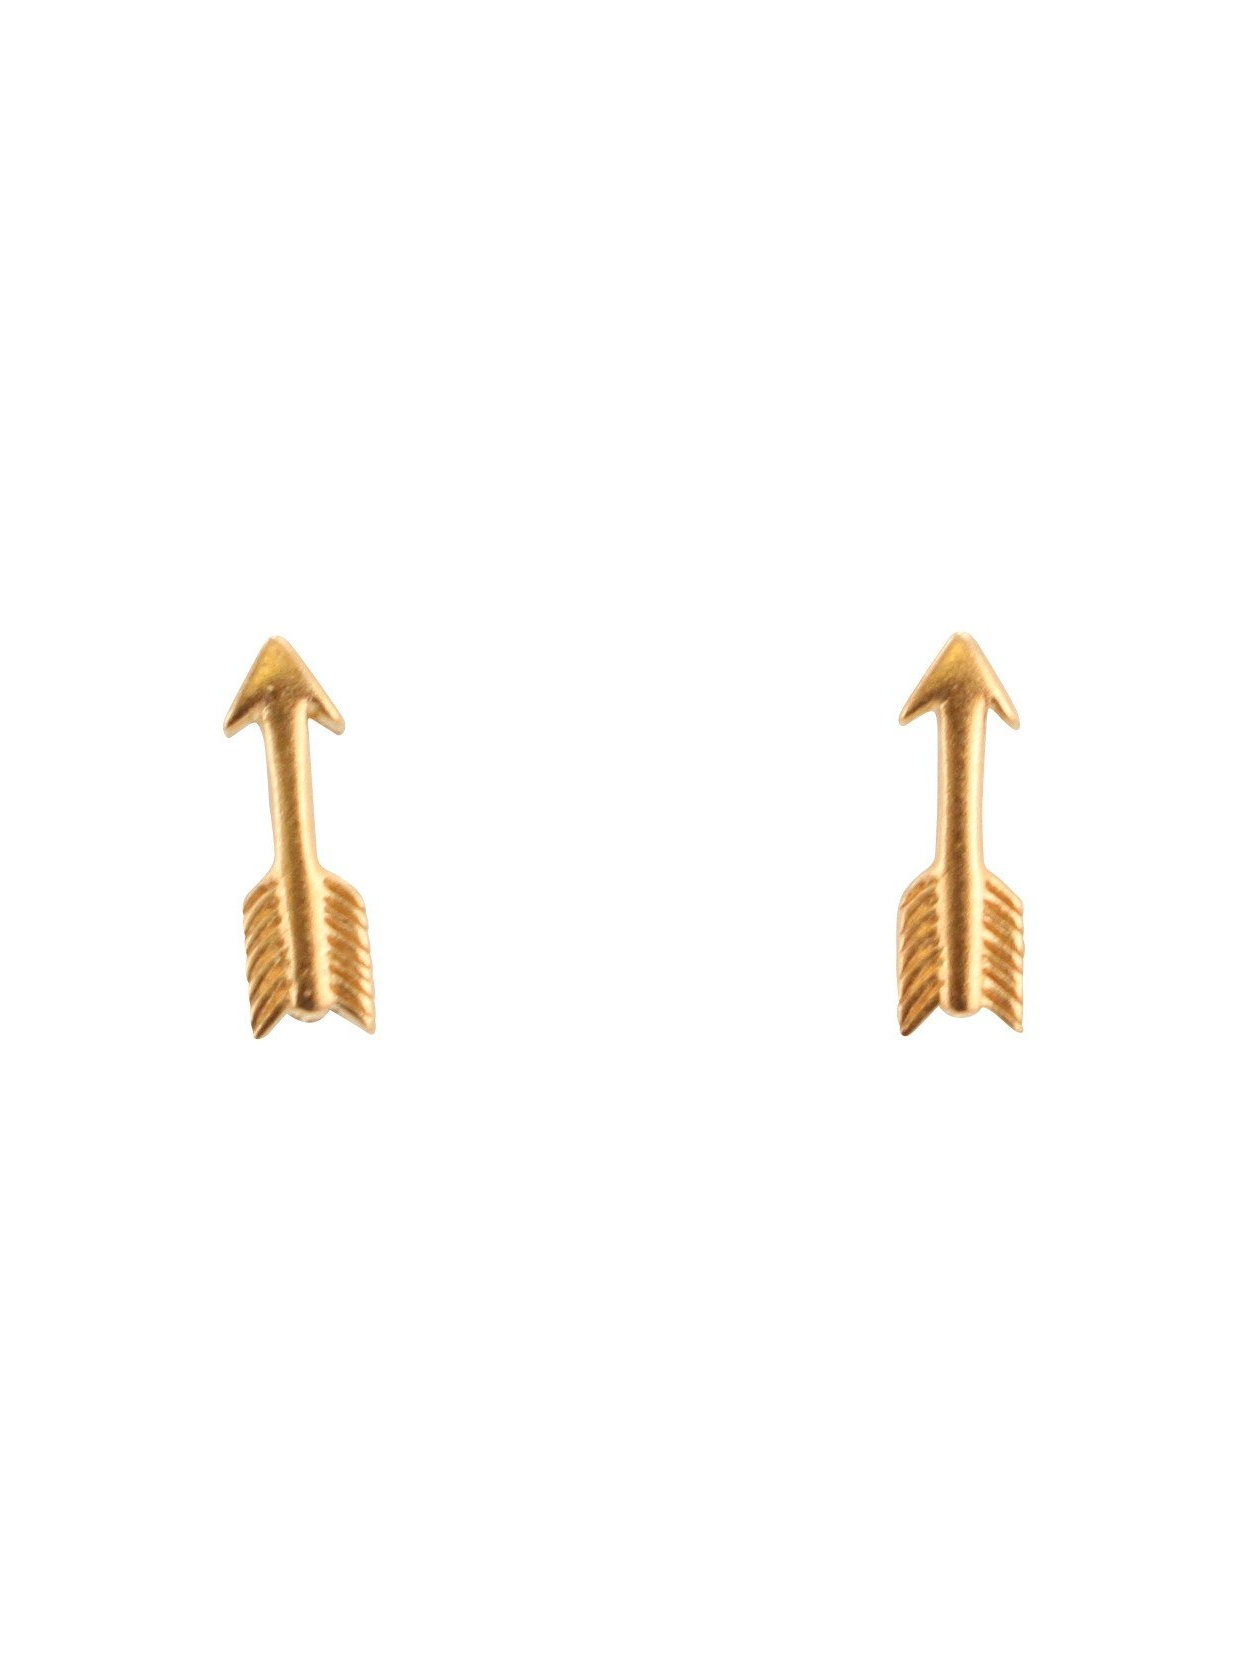 Zoe And Piper Small Arrow Stud Earrings 24kt Gold Plated Sterling Silver 6492